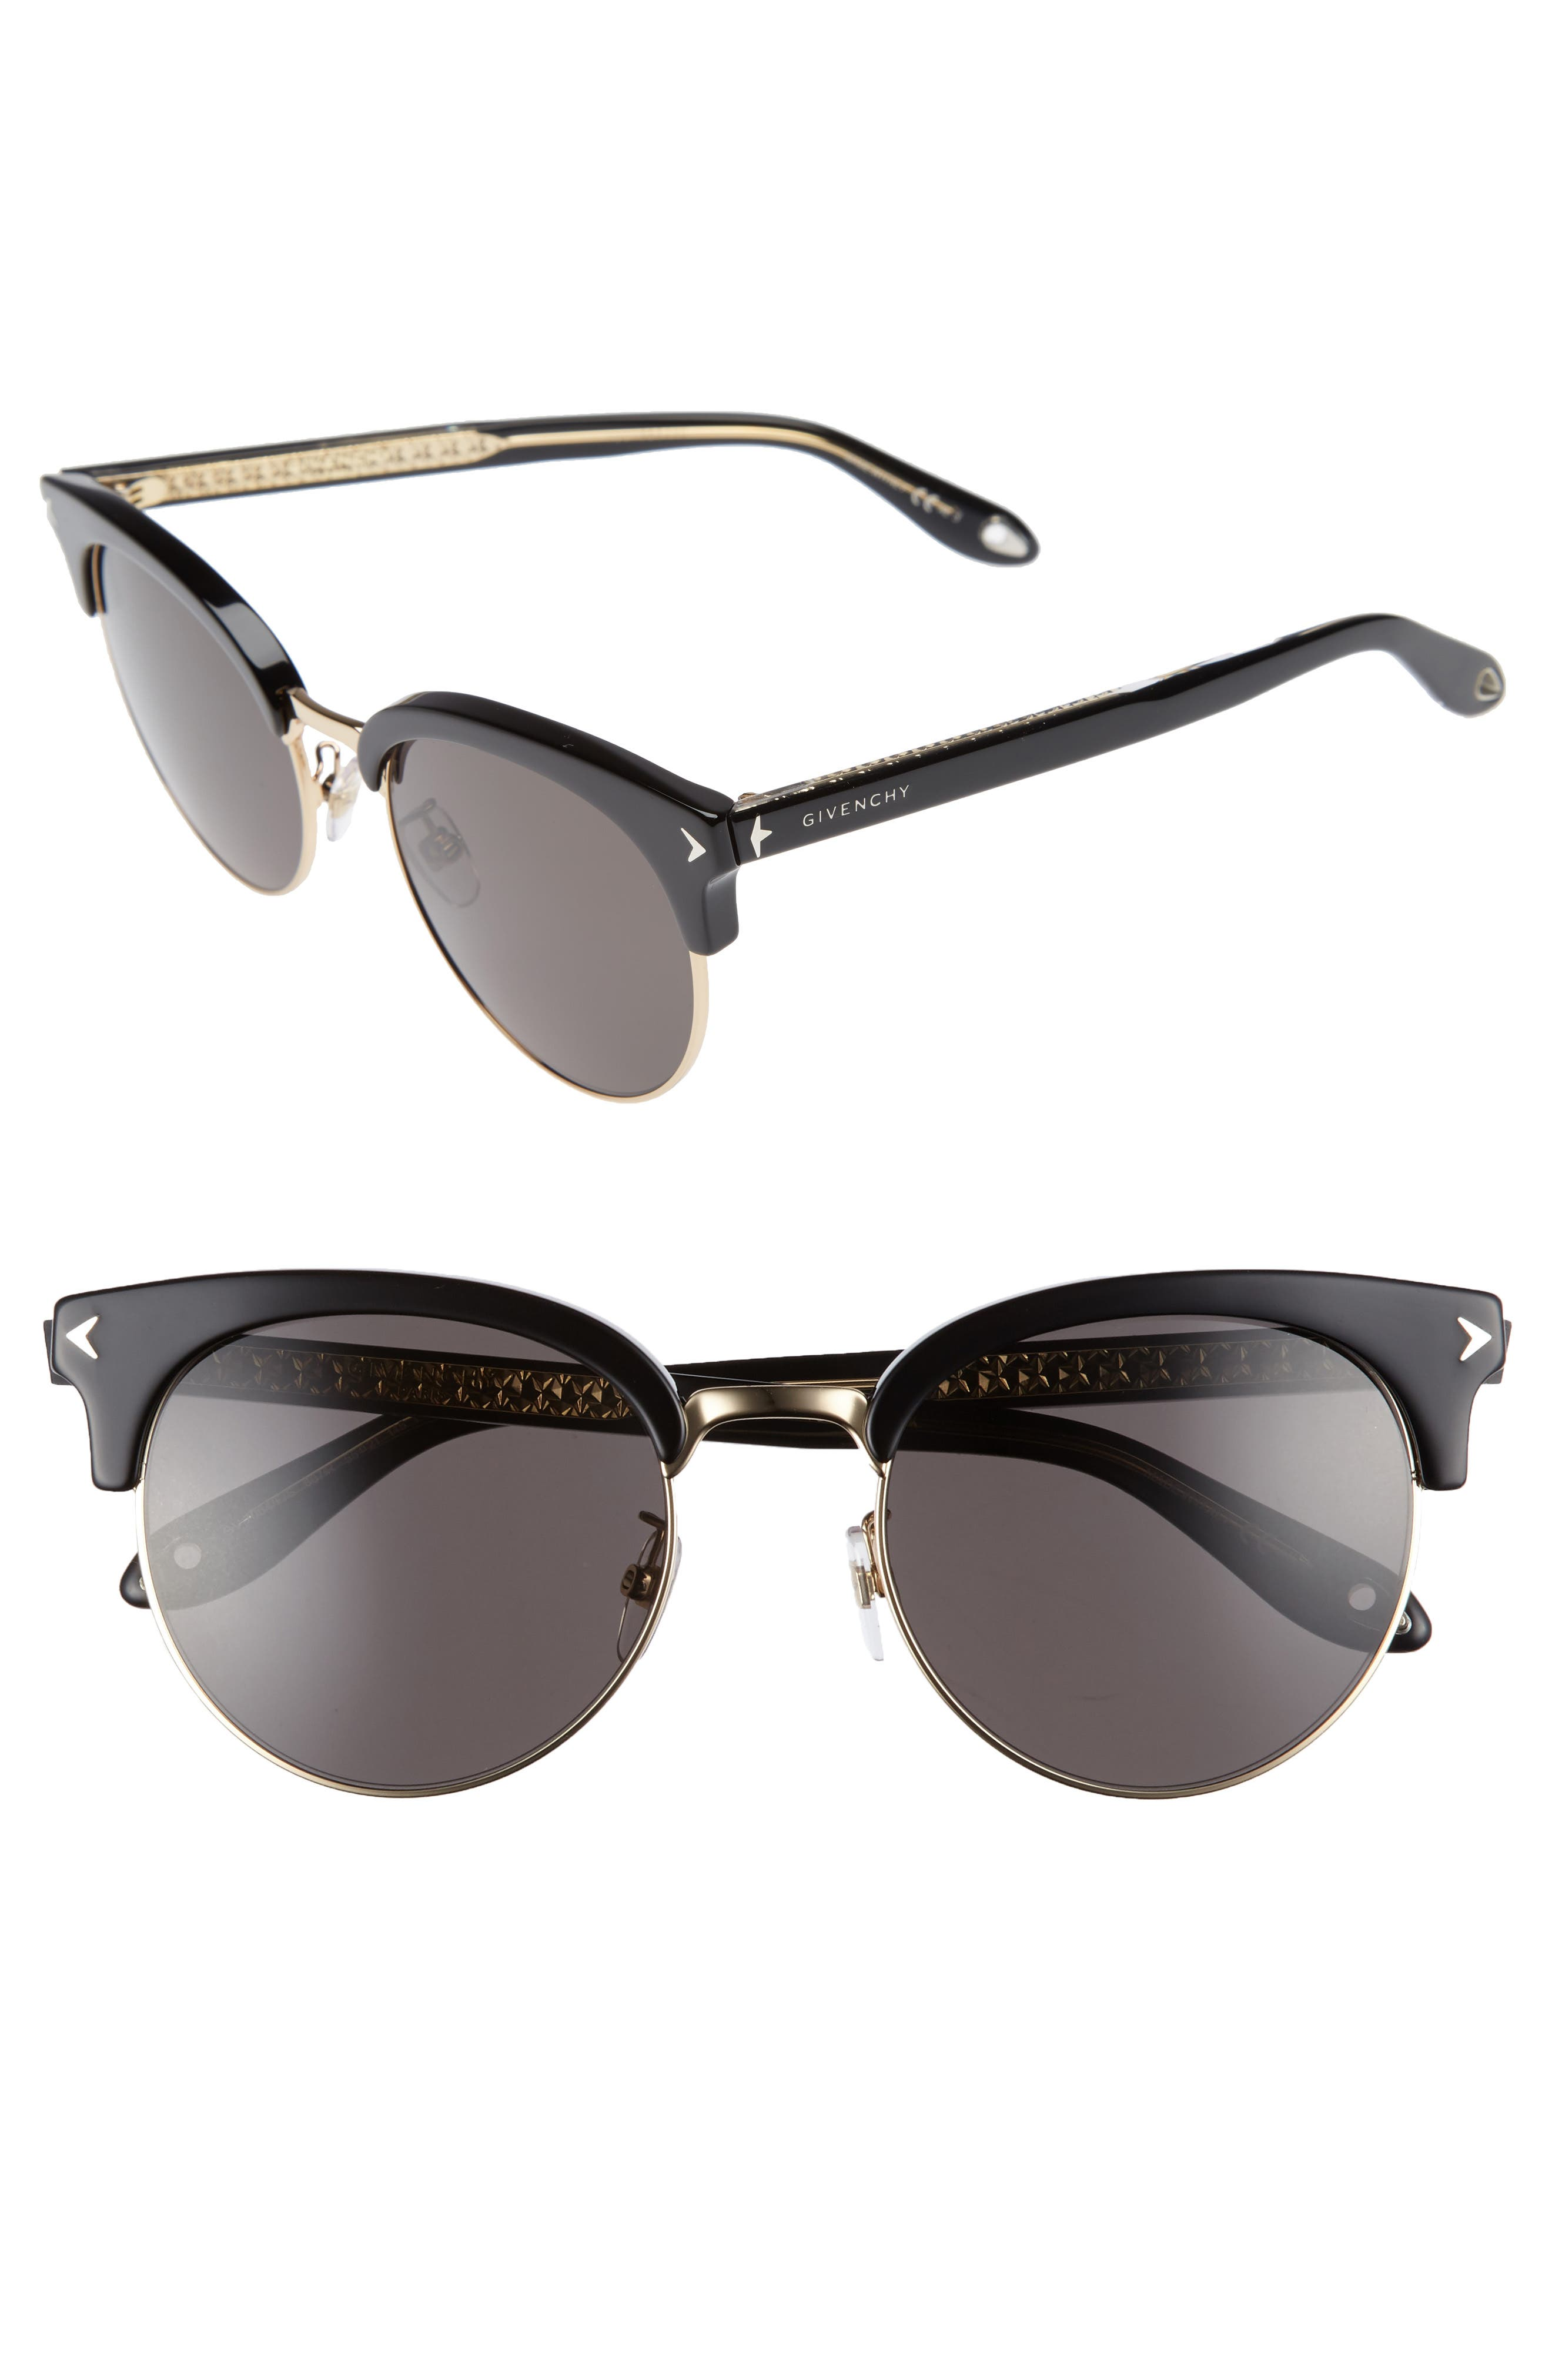 Givenchy 55mm Sunglasses